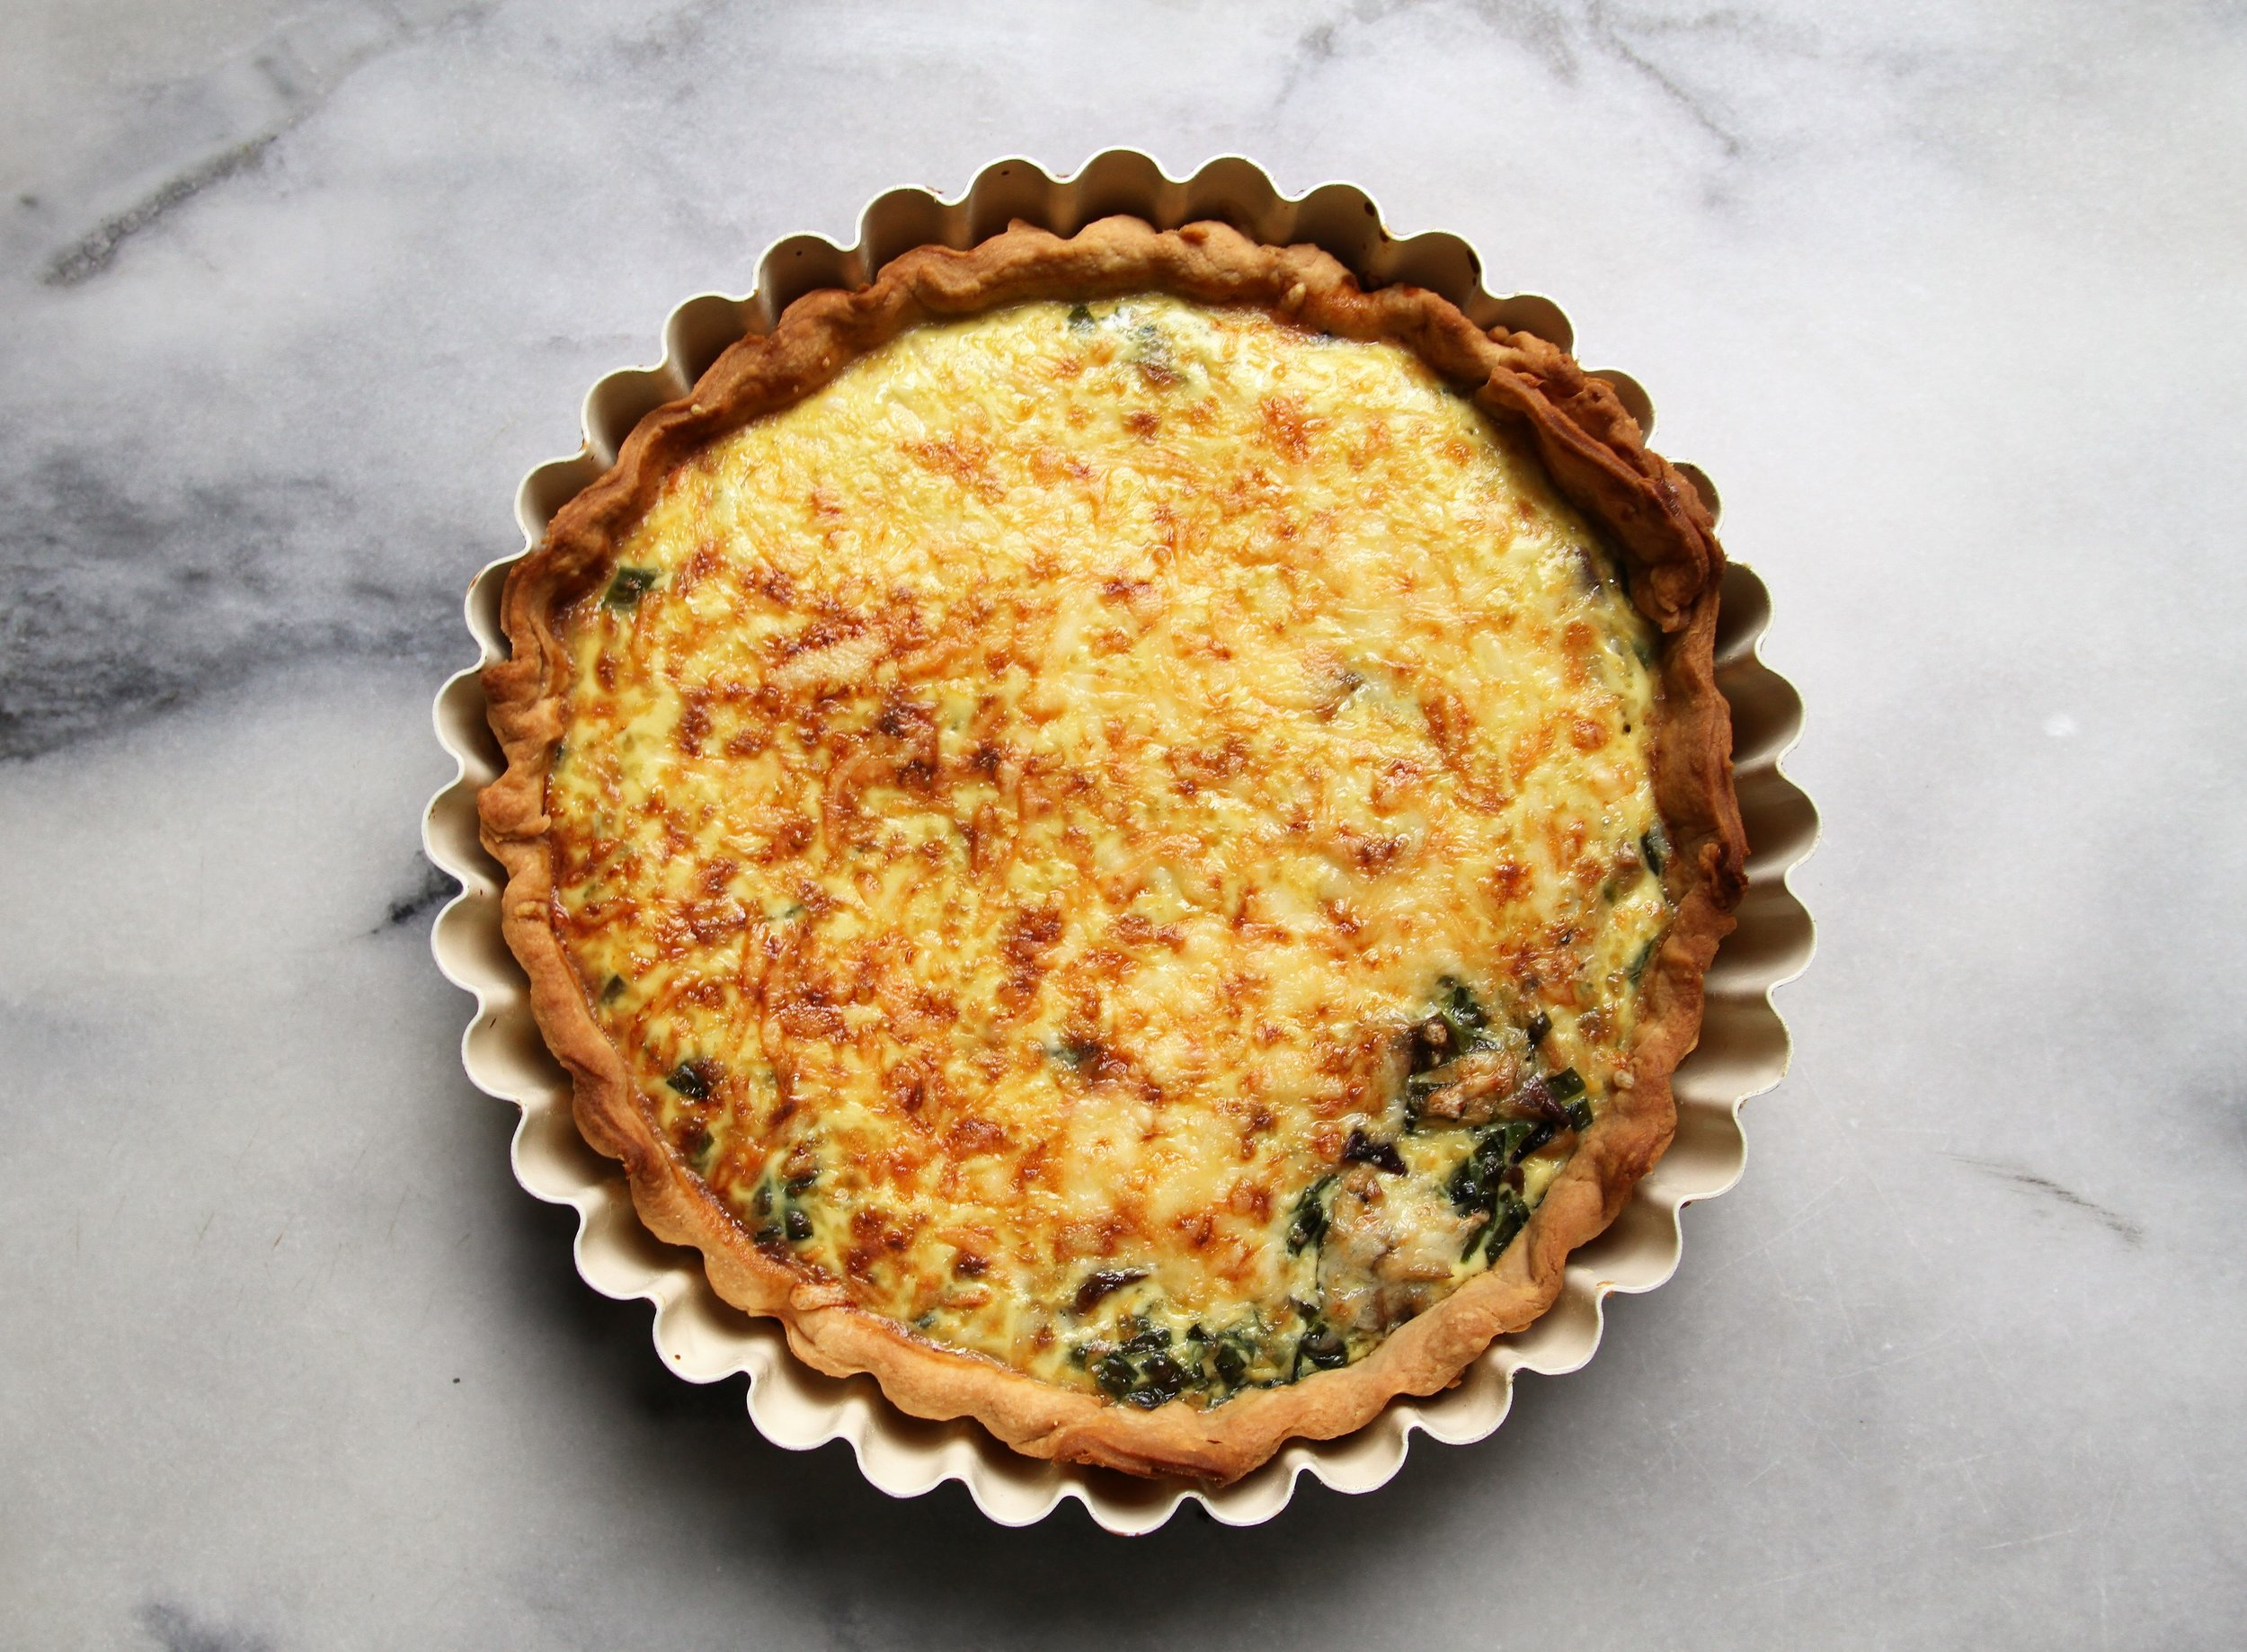 Ramp and Mushroom Quiche